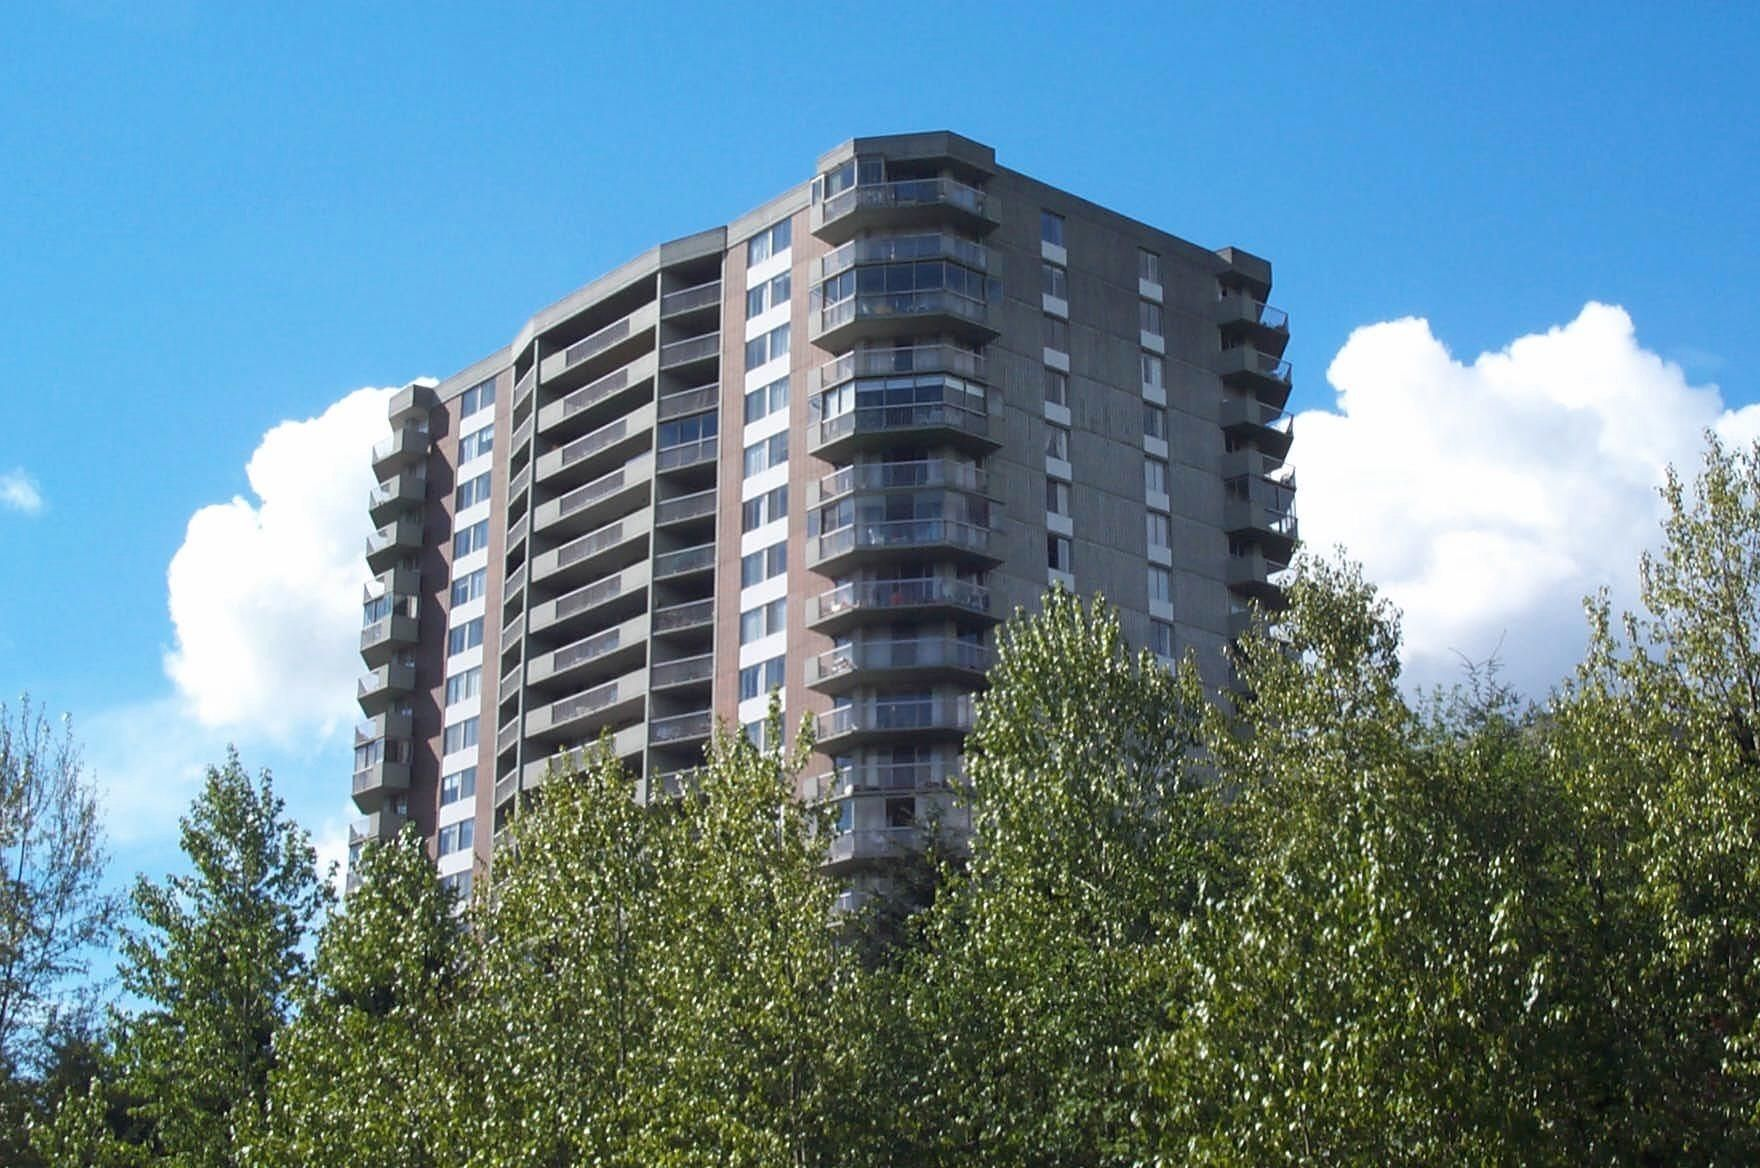 """Main Photo: 1010 2024 FULLERTON Avenue in North Vancouver: Pemberton NV Condo for sale in """"Woodcroft"""" : MLS®# R2625514"""